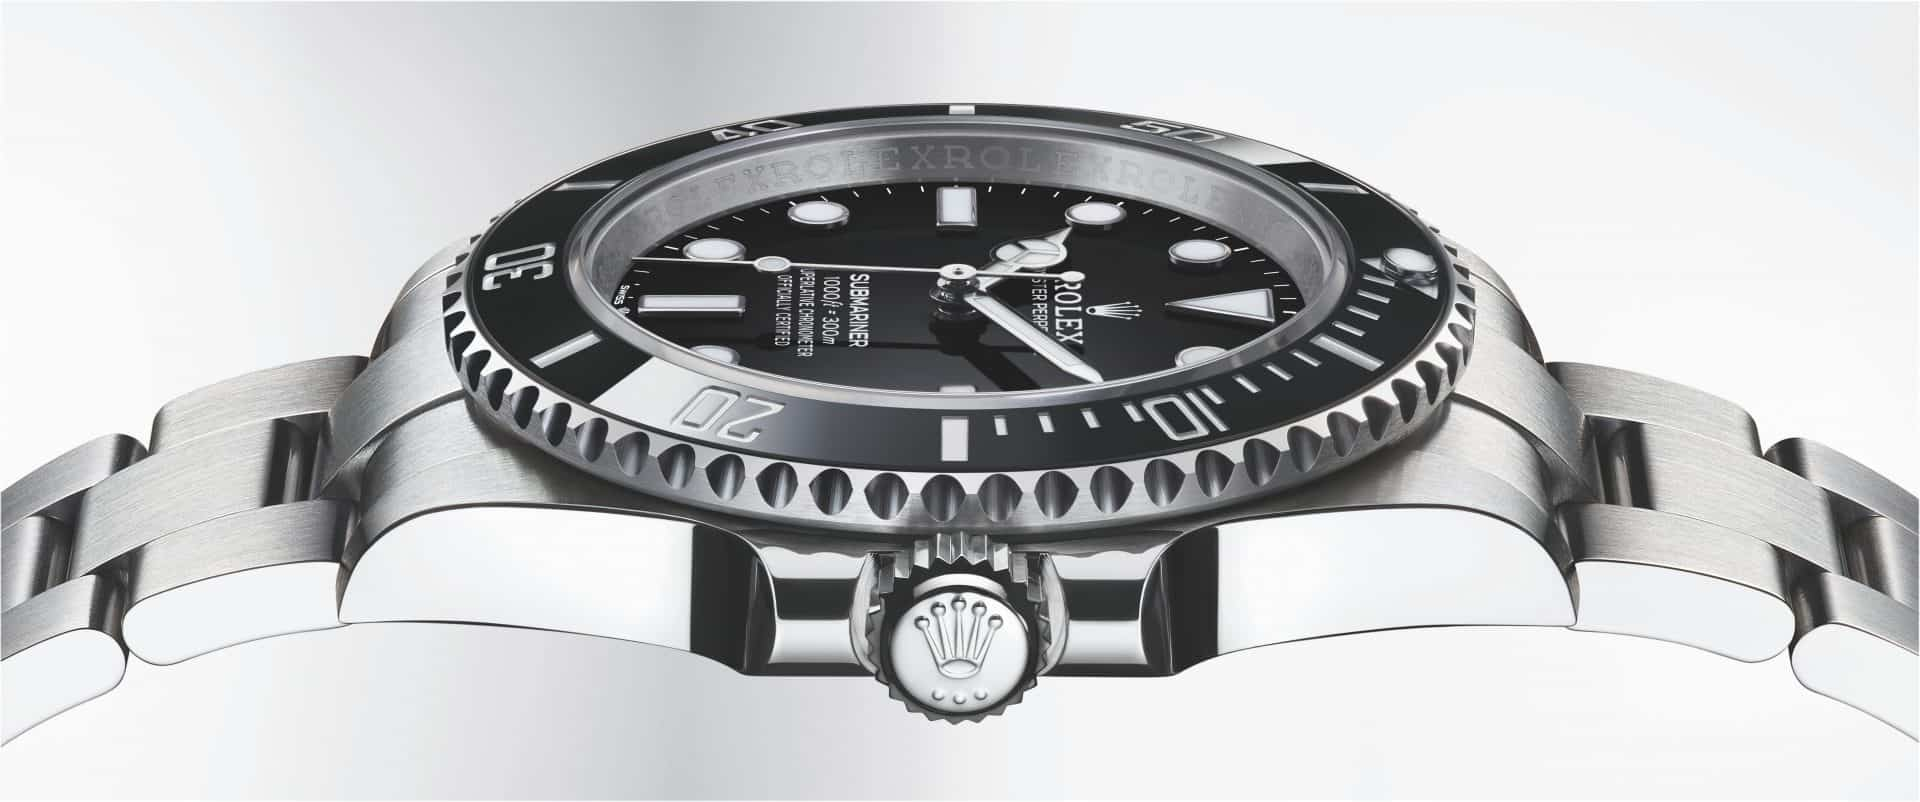 Rolex Oyster Perpetual Submariner Referenz 124060 0001 2001ac Profil